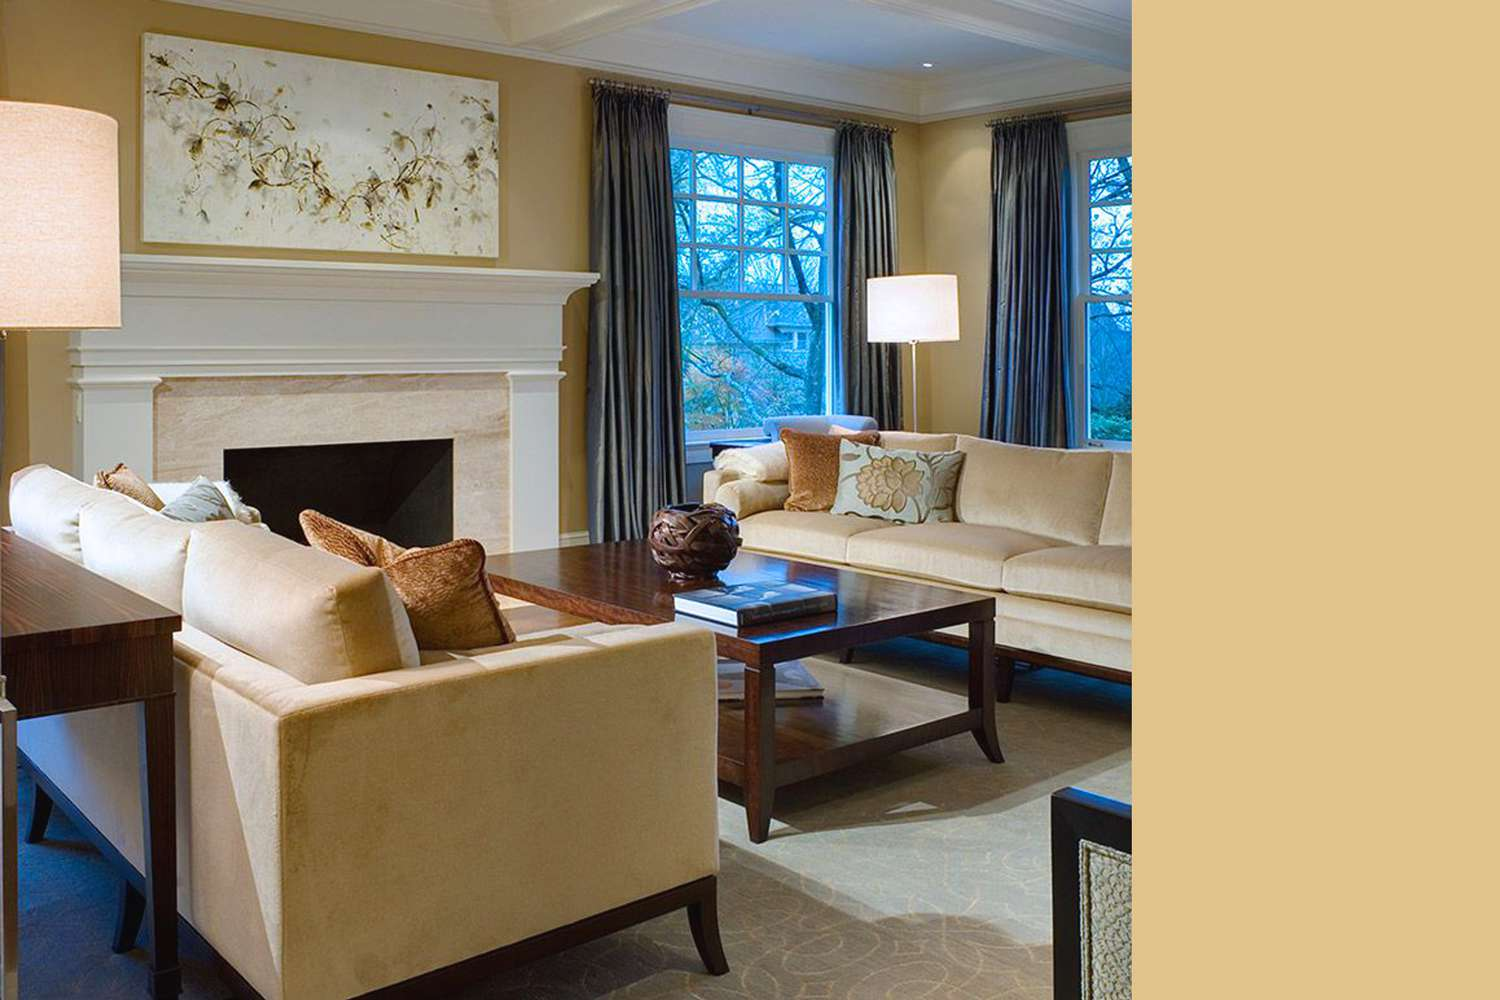 Interior painted a similar color to Autumn Glow by PPG